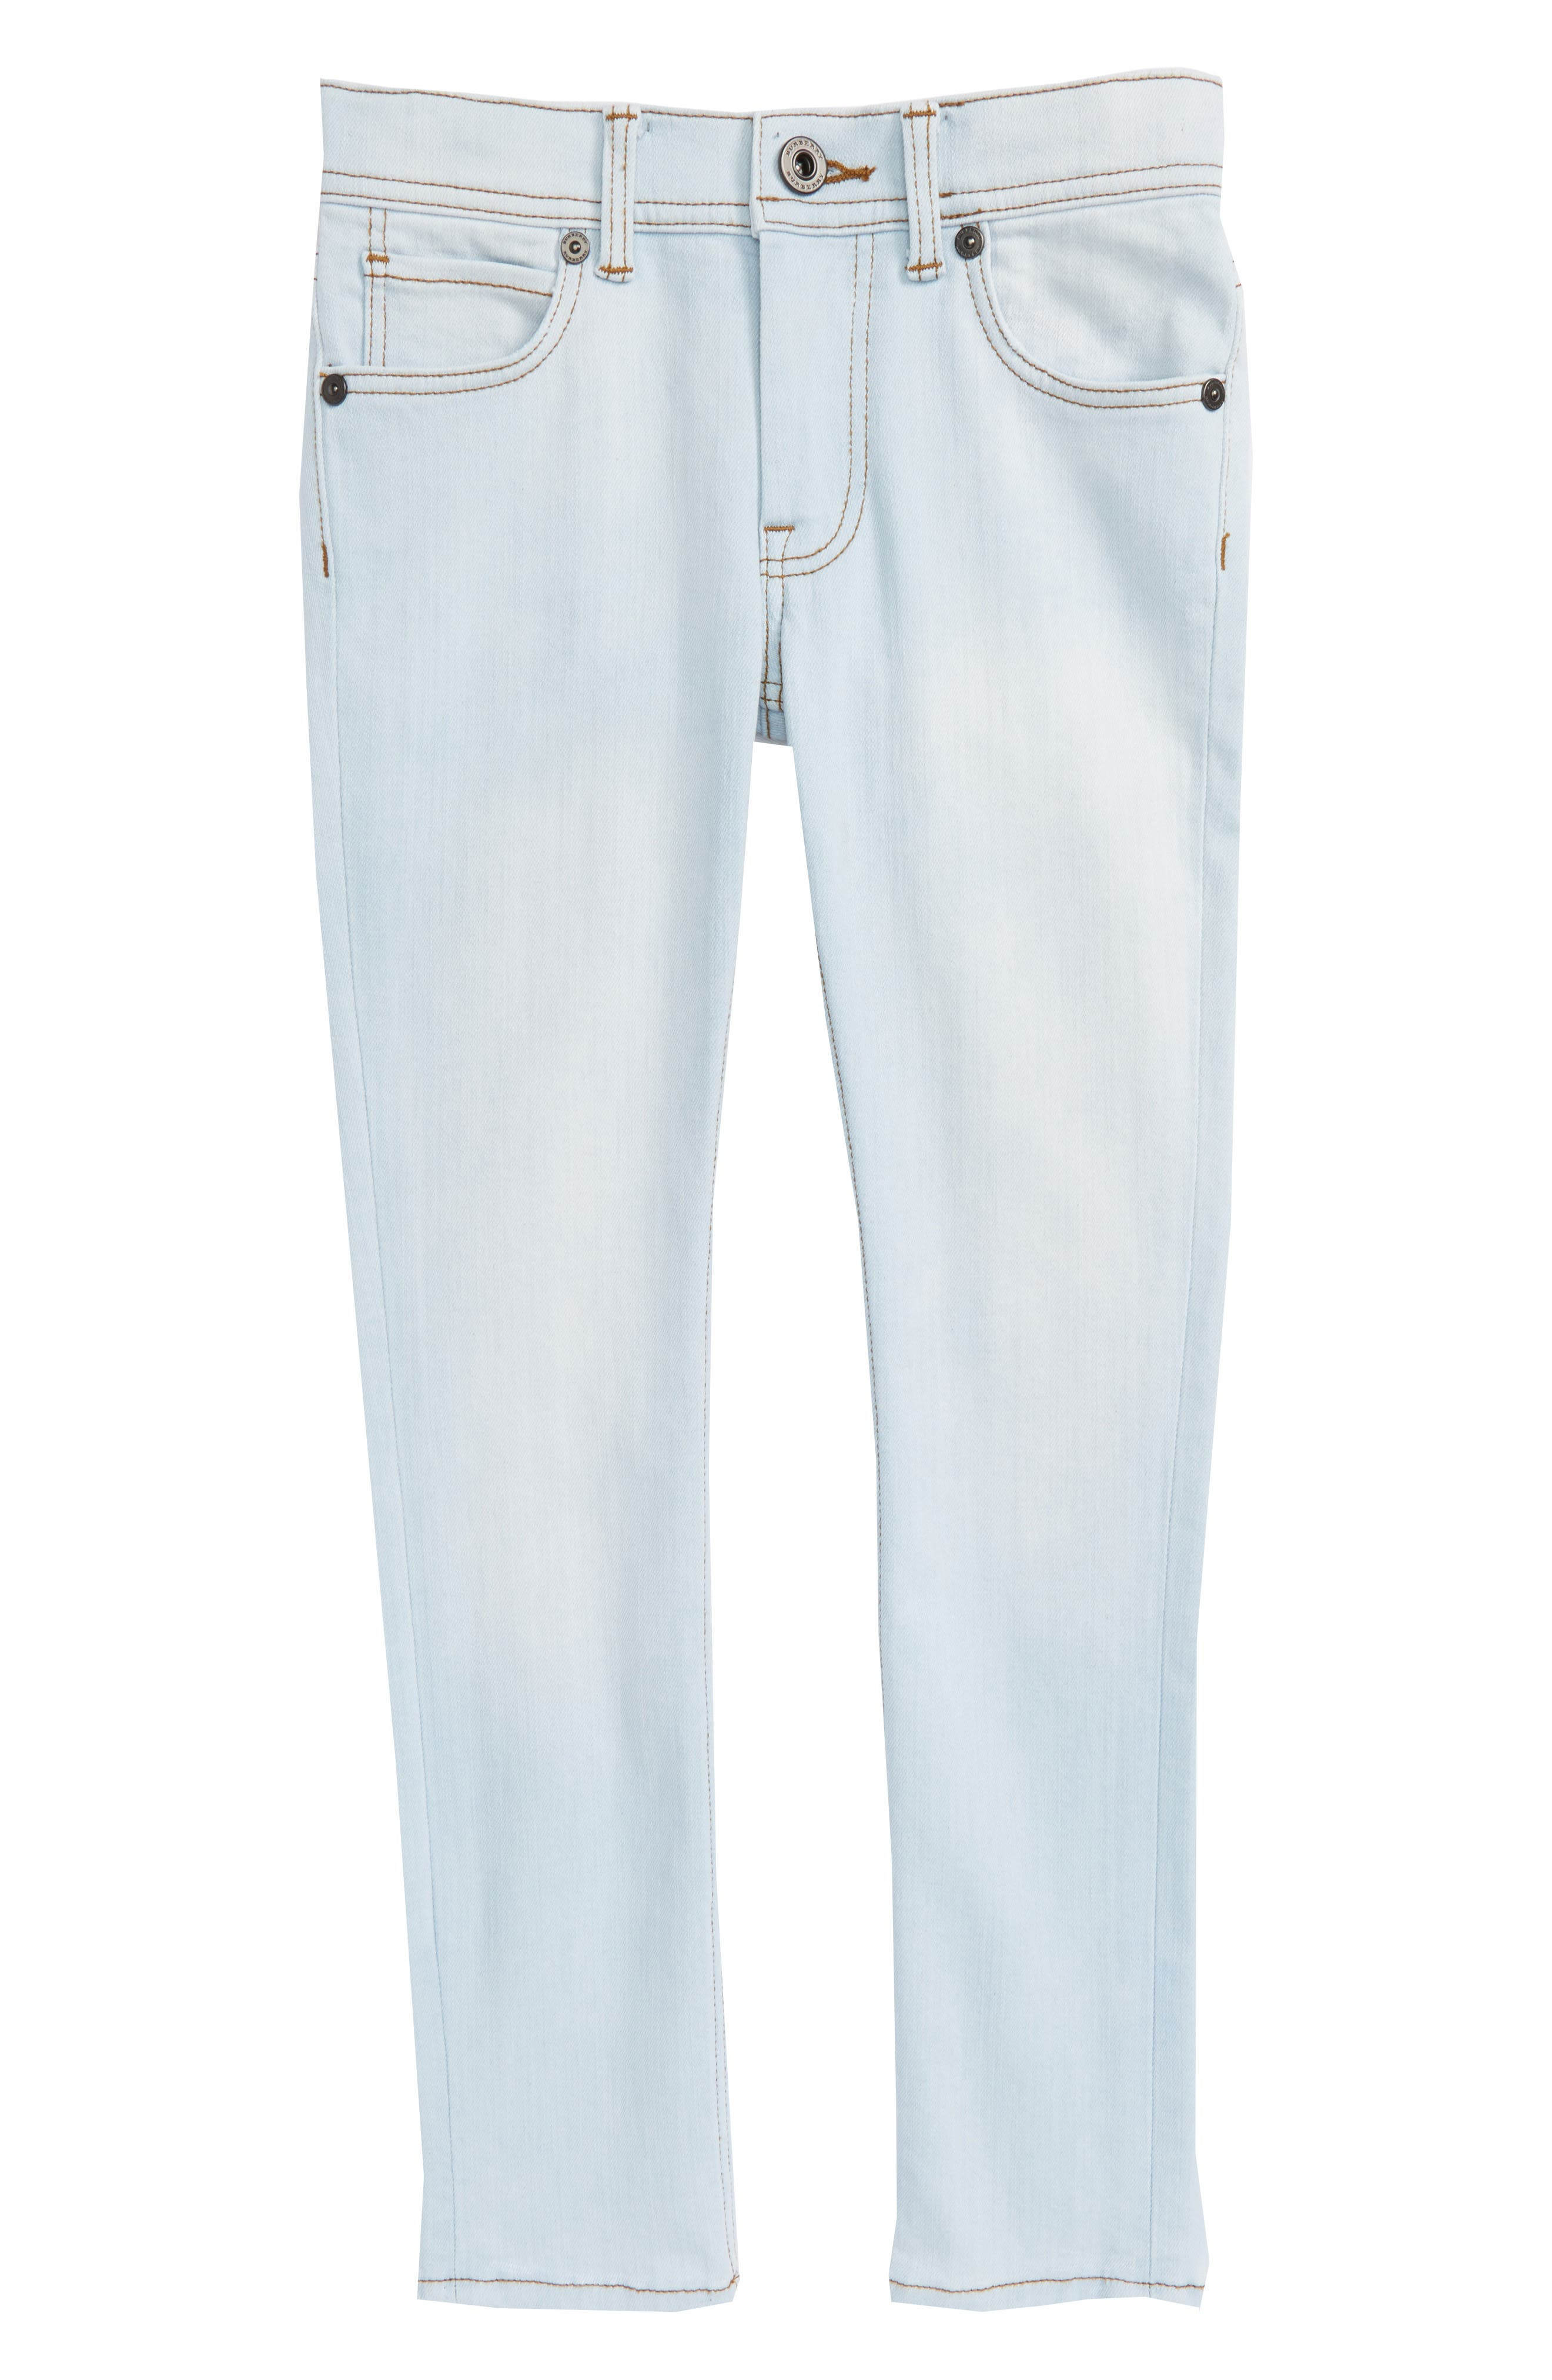 Skinny Jeans,                             Main thumbnail 1, color,                             Light Blue